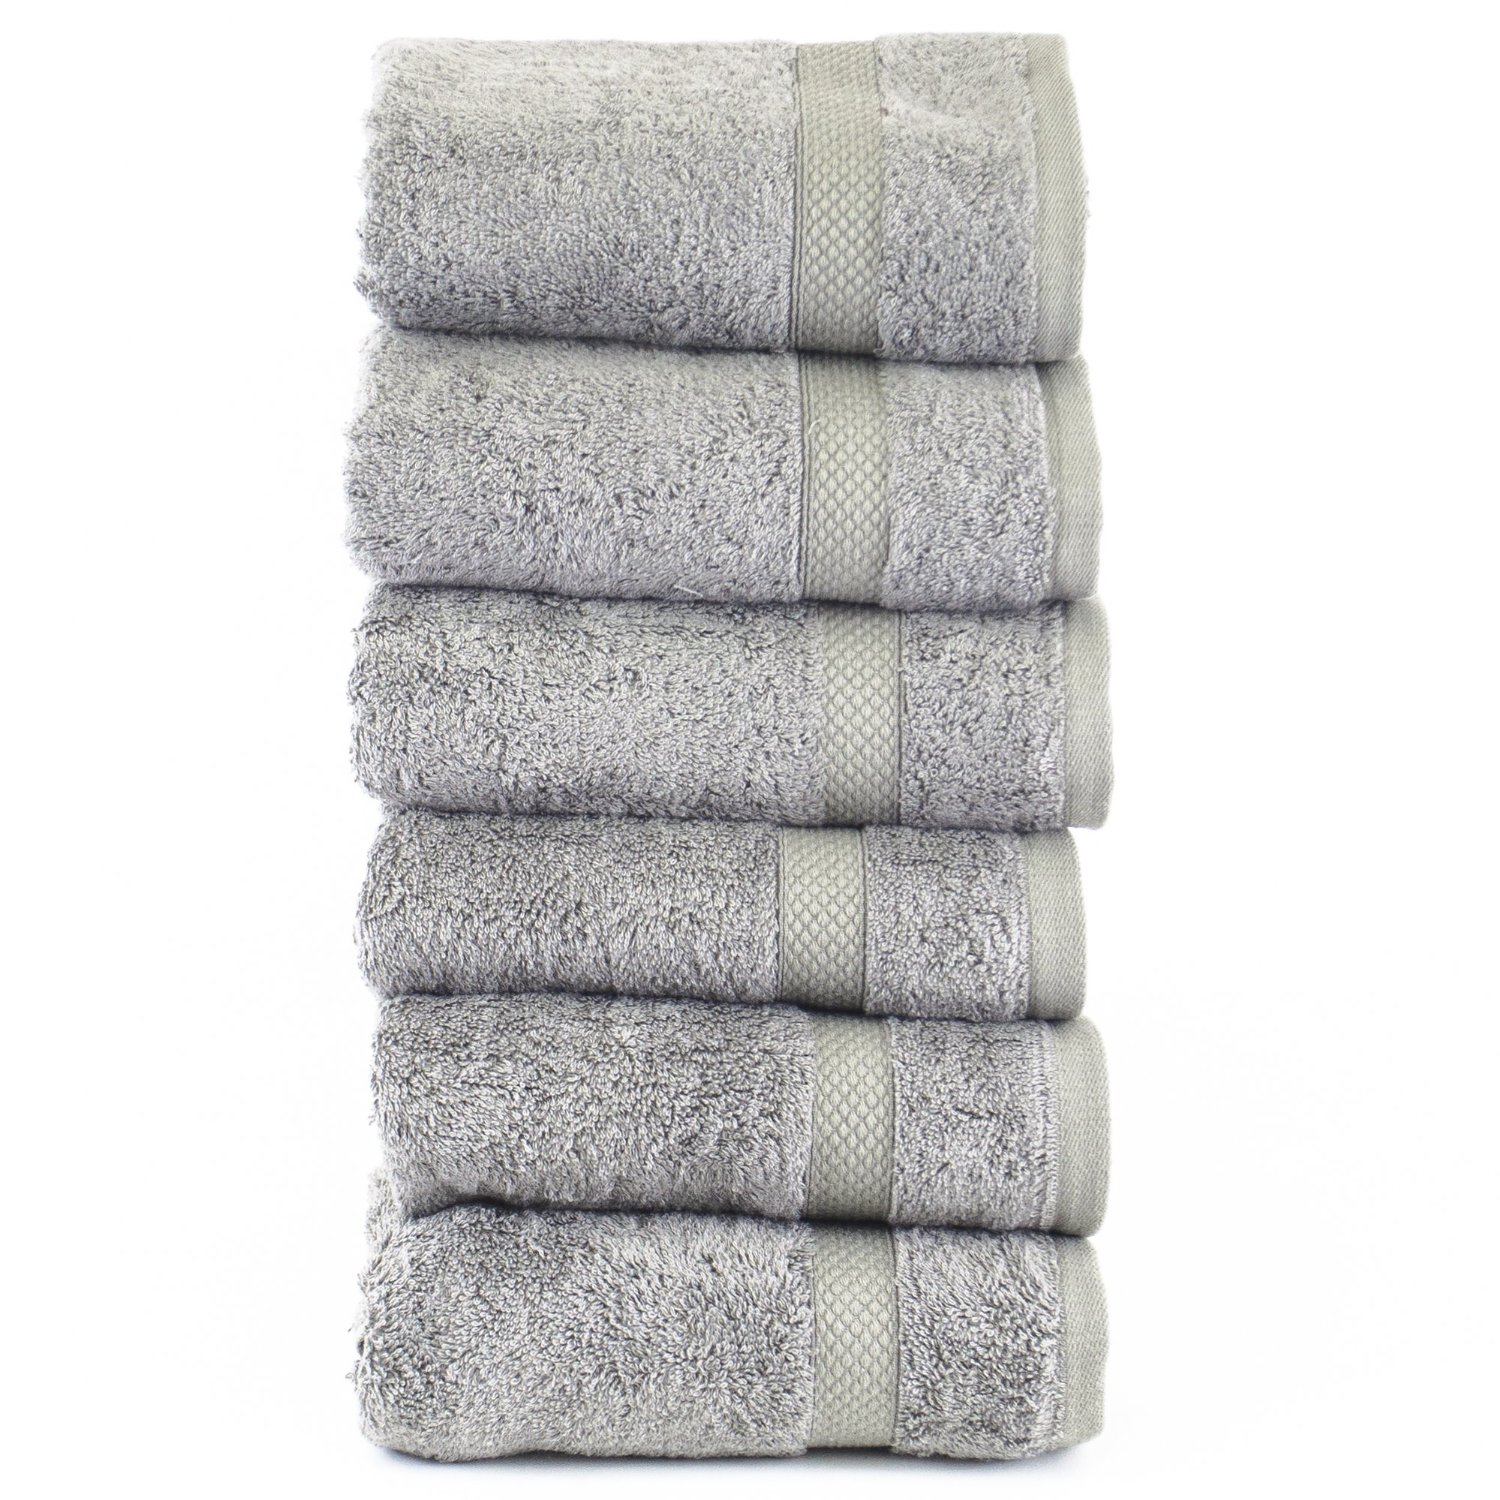 Luxury Hotel & Spa Towel 100% Genuine Turkish Cotton Bamboo (Gray, Bath Towel  – Set of 4) review